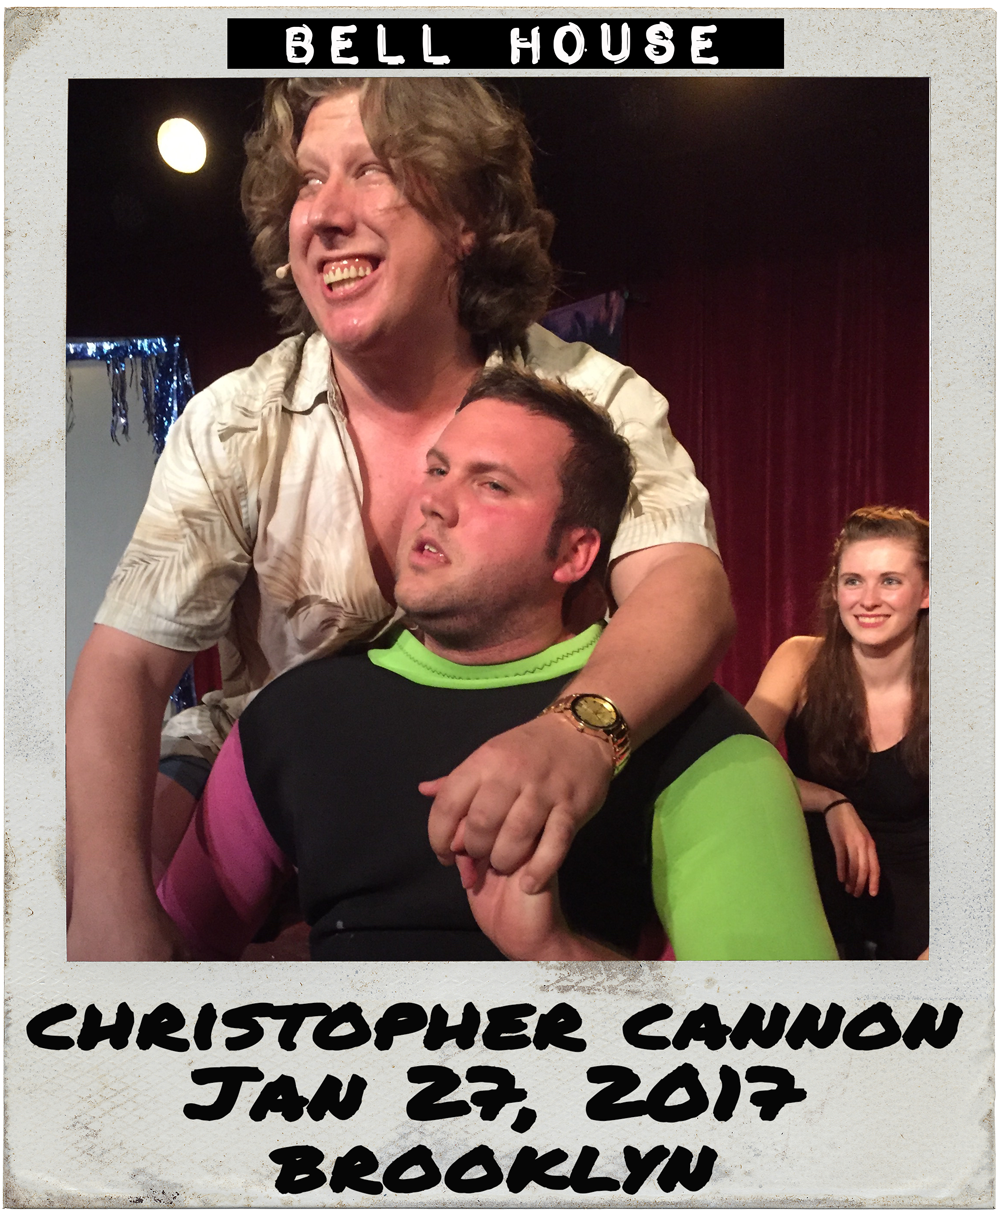 01_27_17_Christopher-Cannon_Bell-House_BK.png